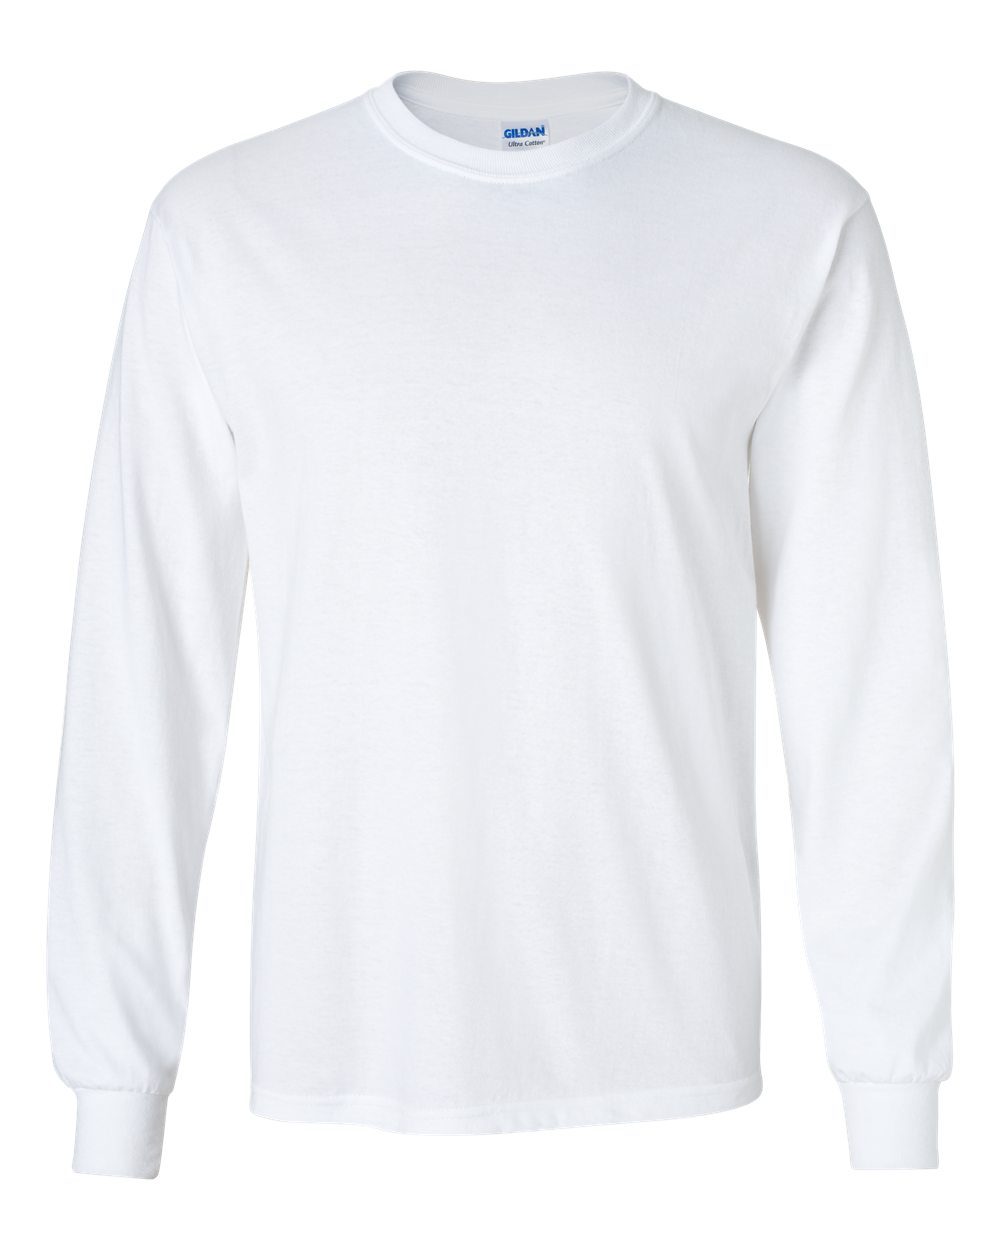 long sleeve shirts gildan 2400 - ultra cotton™ long sleeve t-shirt | wordans.com cvnrjws